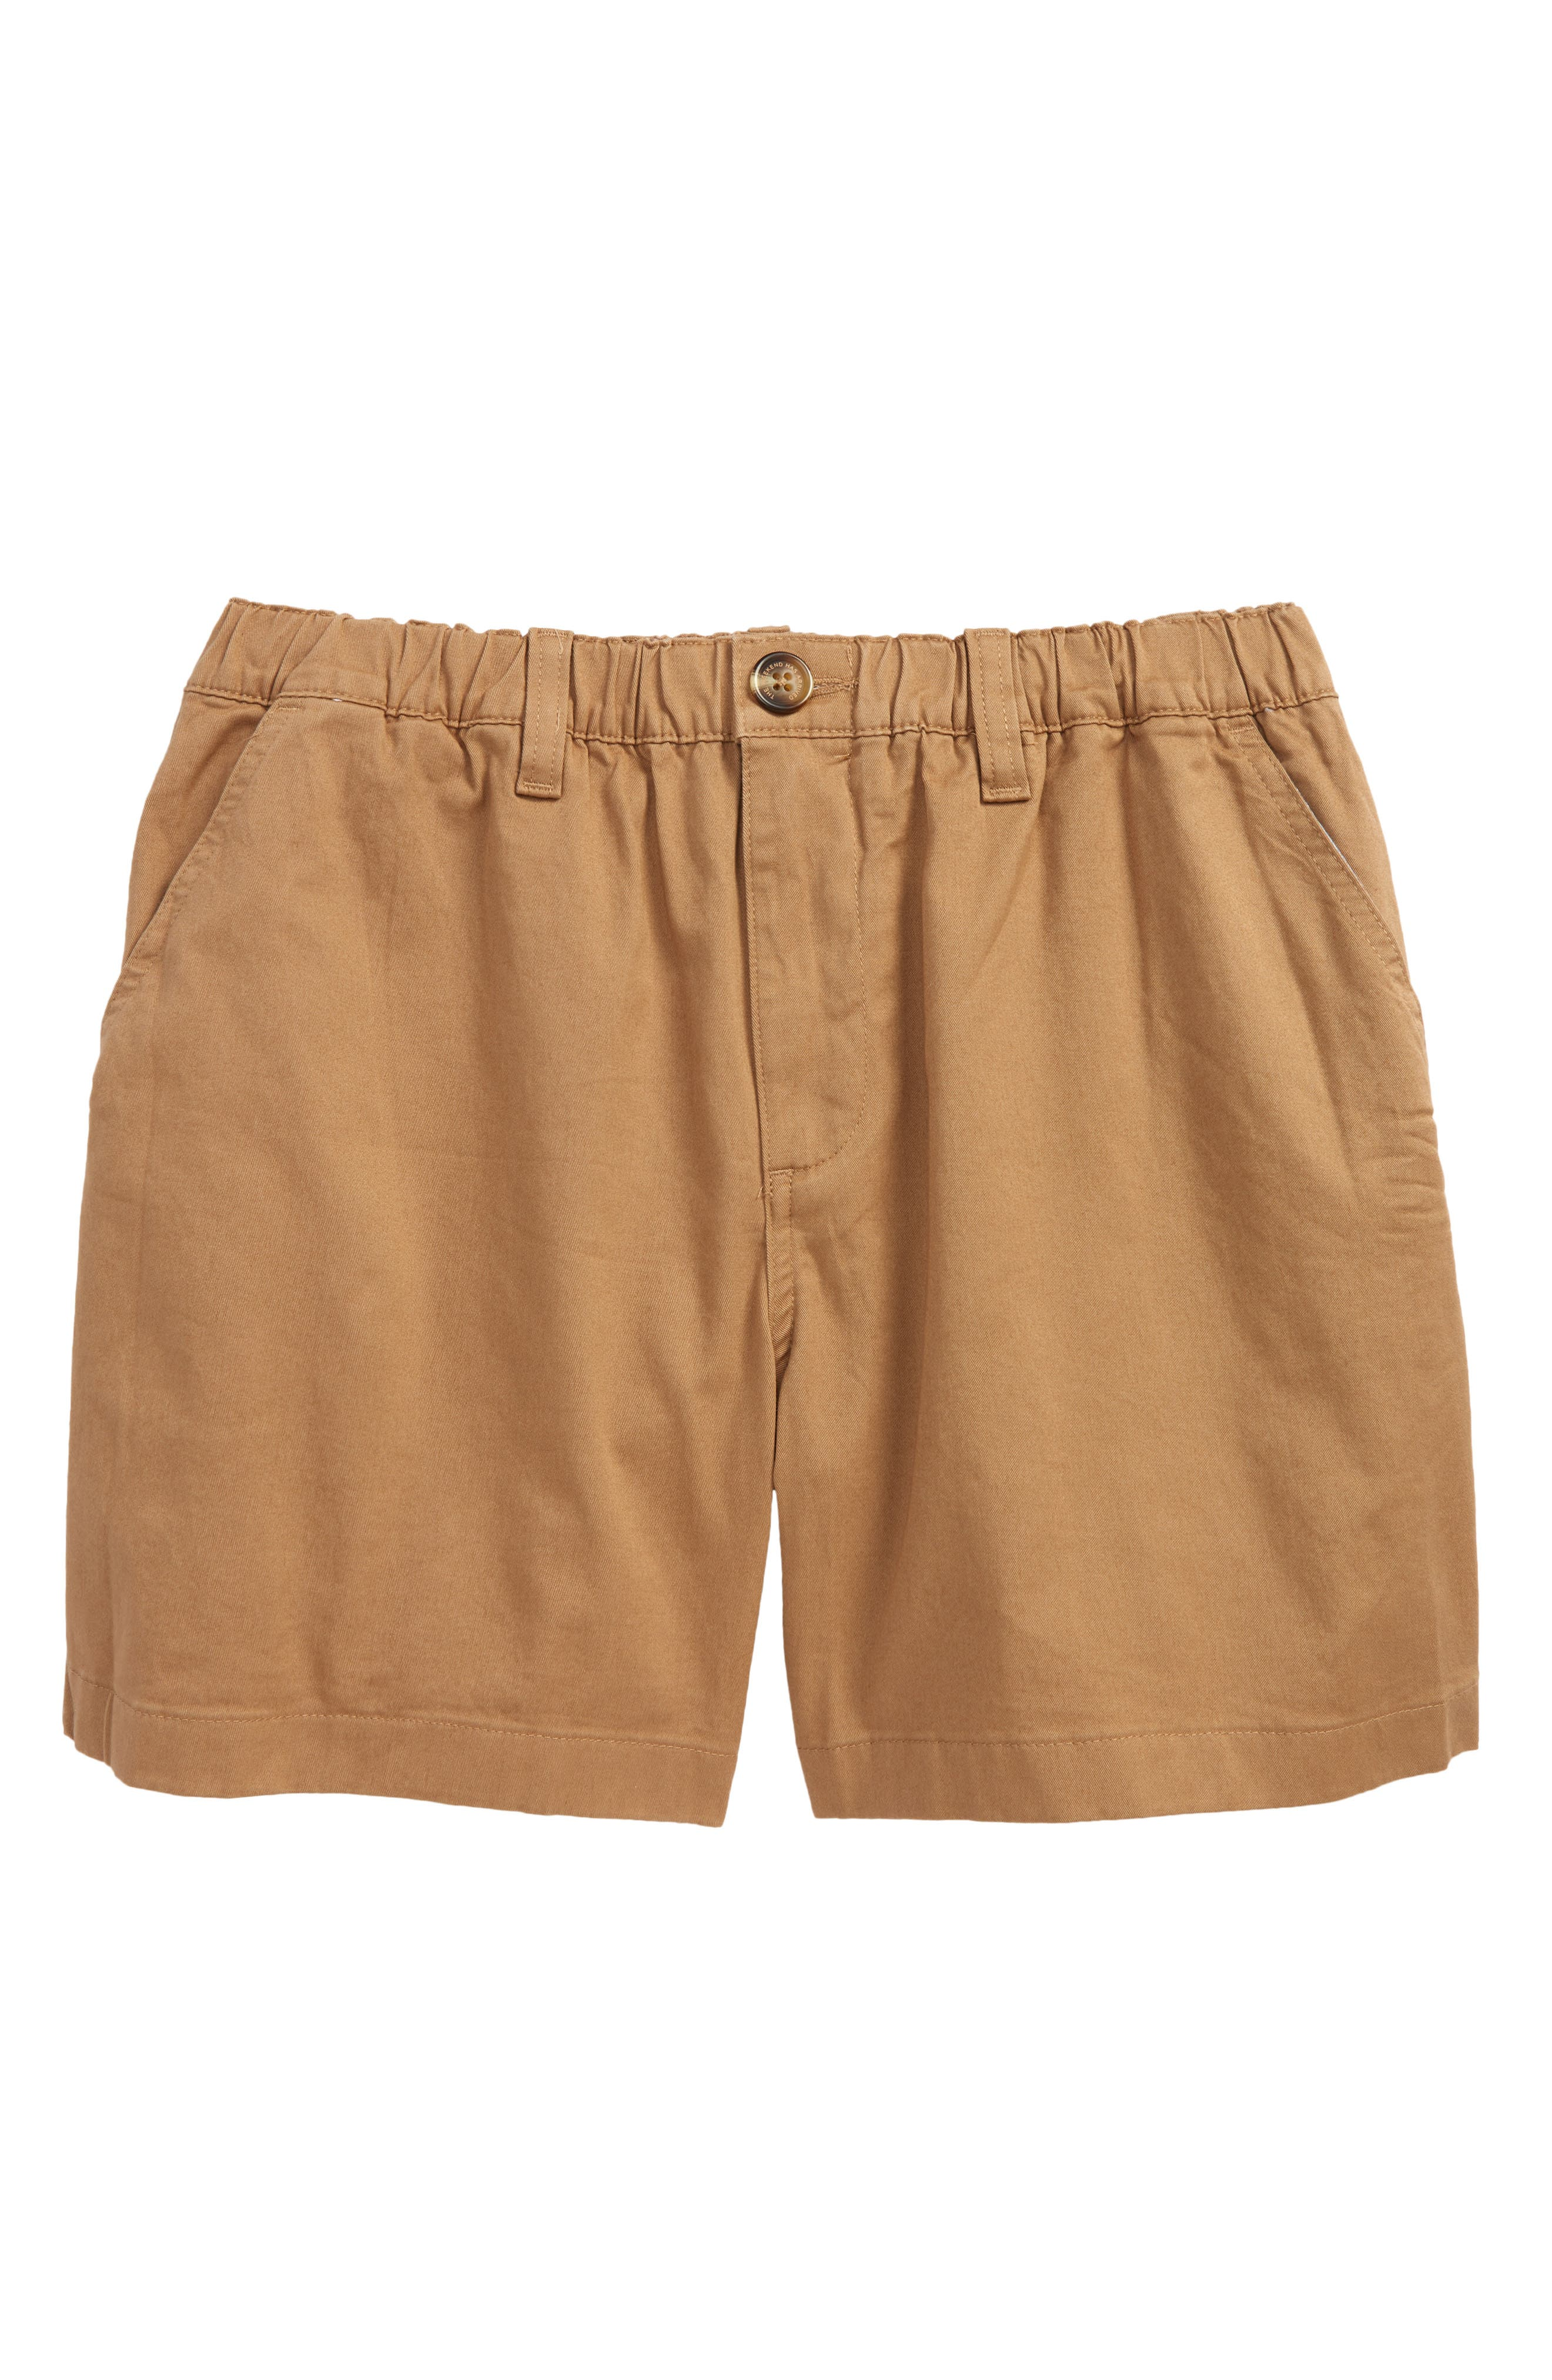 The Staples 5.5 Shorts